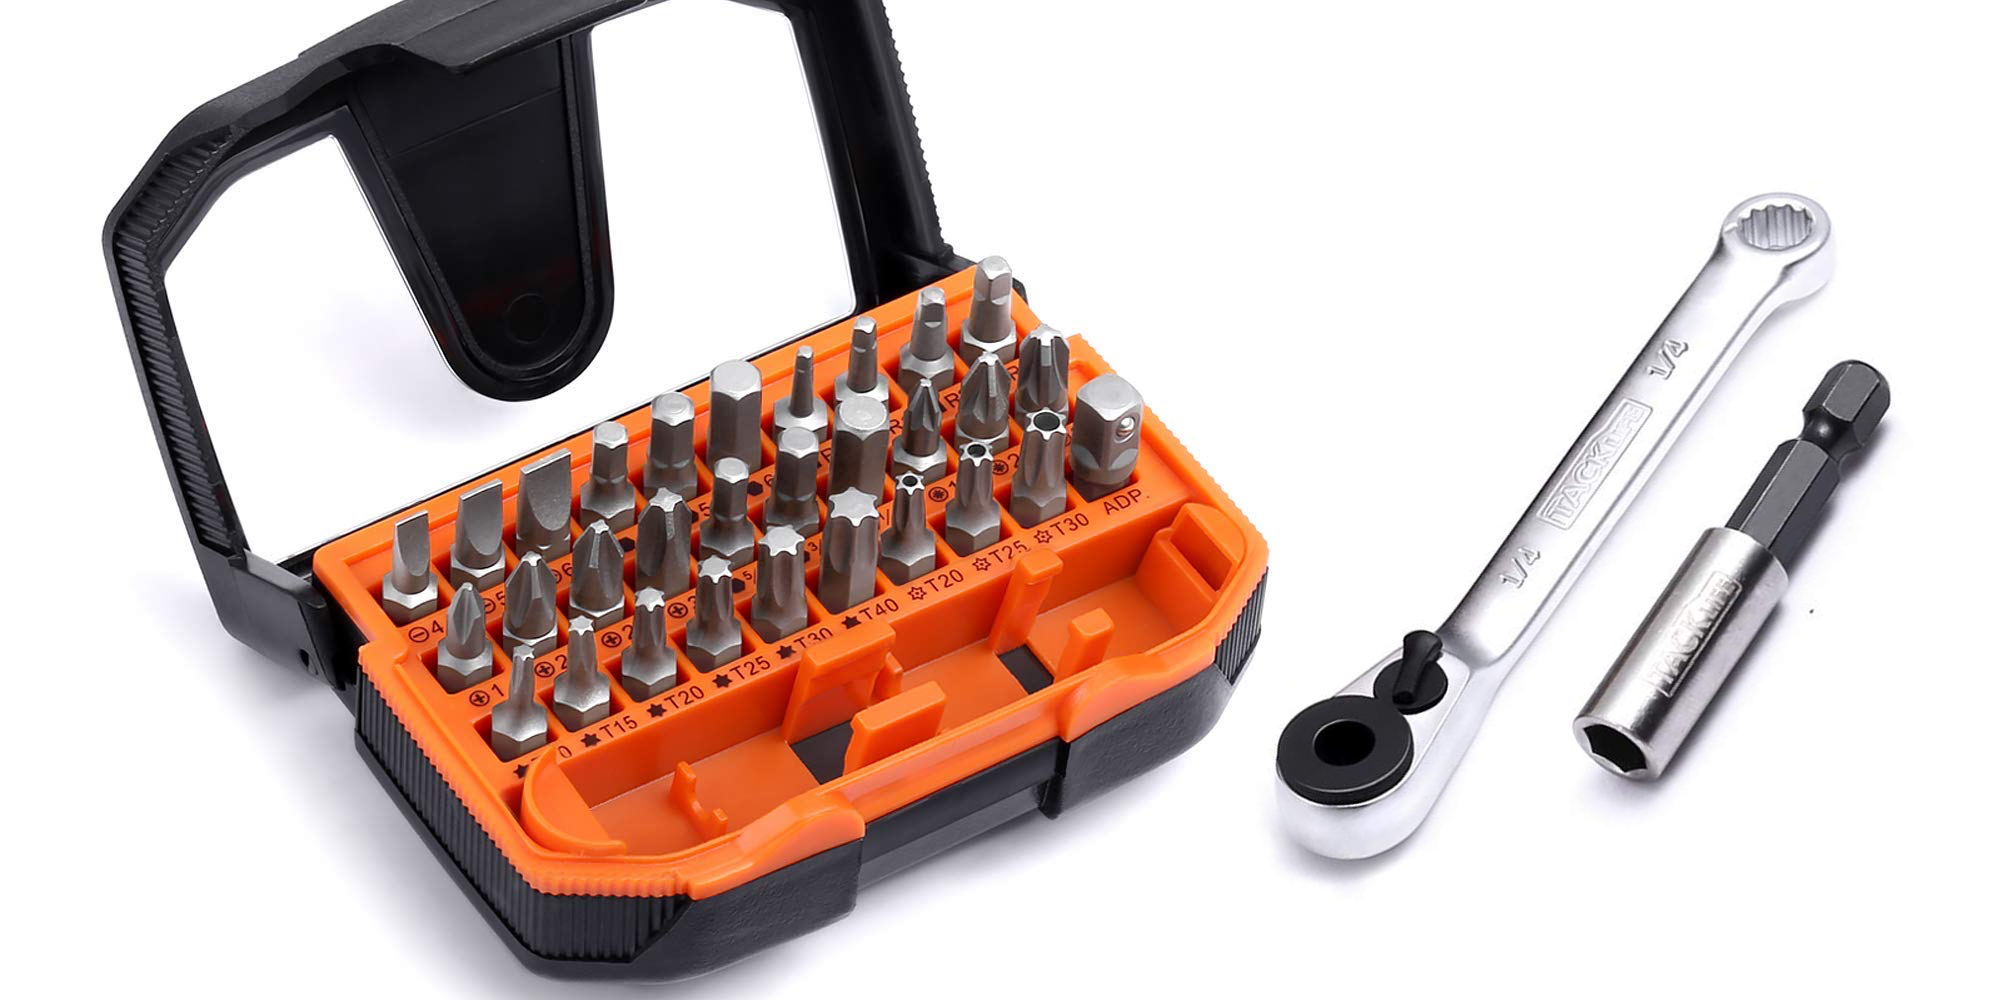 This 32-piece screwdriver kit is a must-have addition to any toolbox at $8 Prime shipped